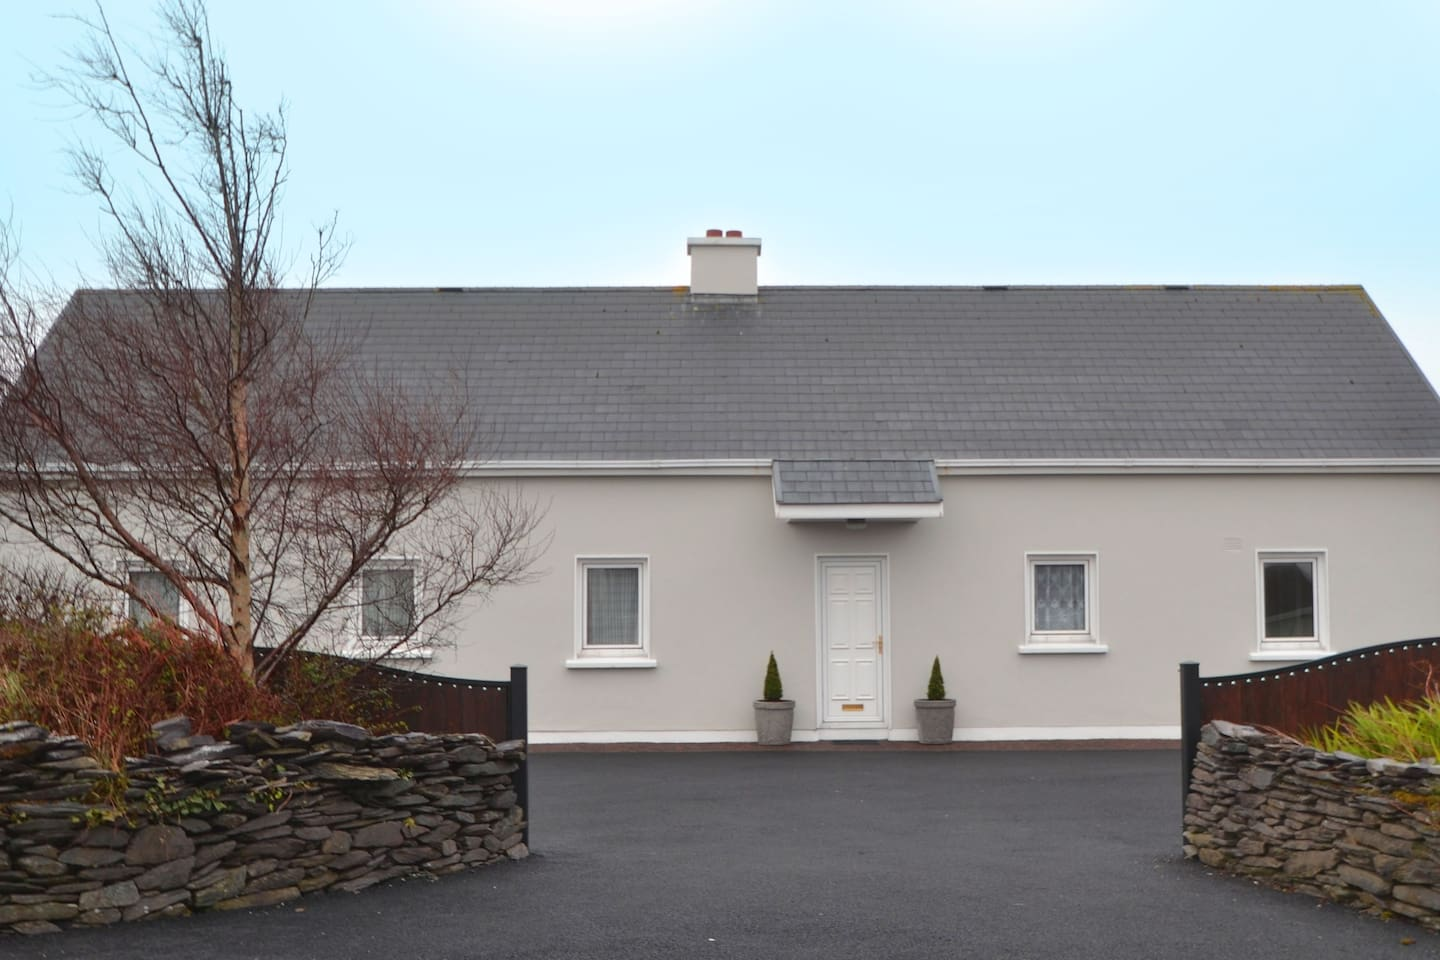 Full view of house with front entrance (entrance which is available for rent)